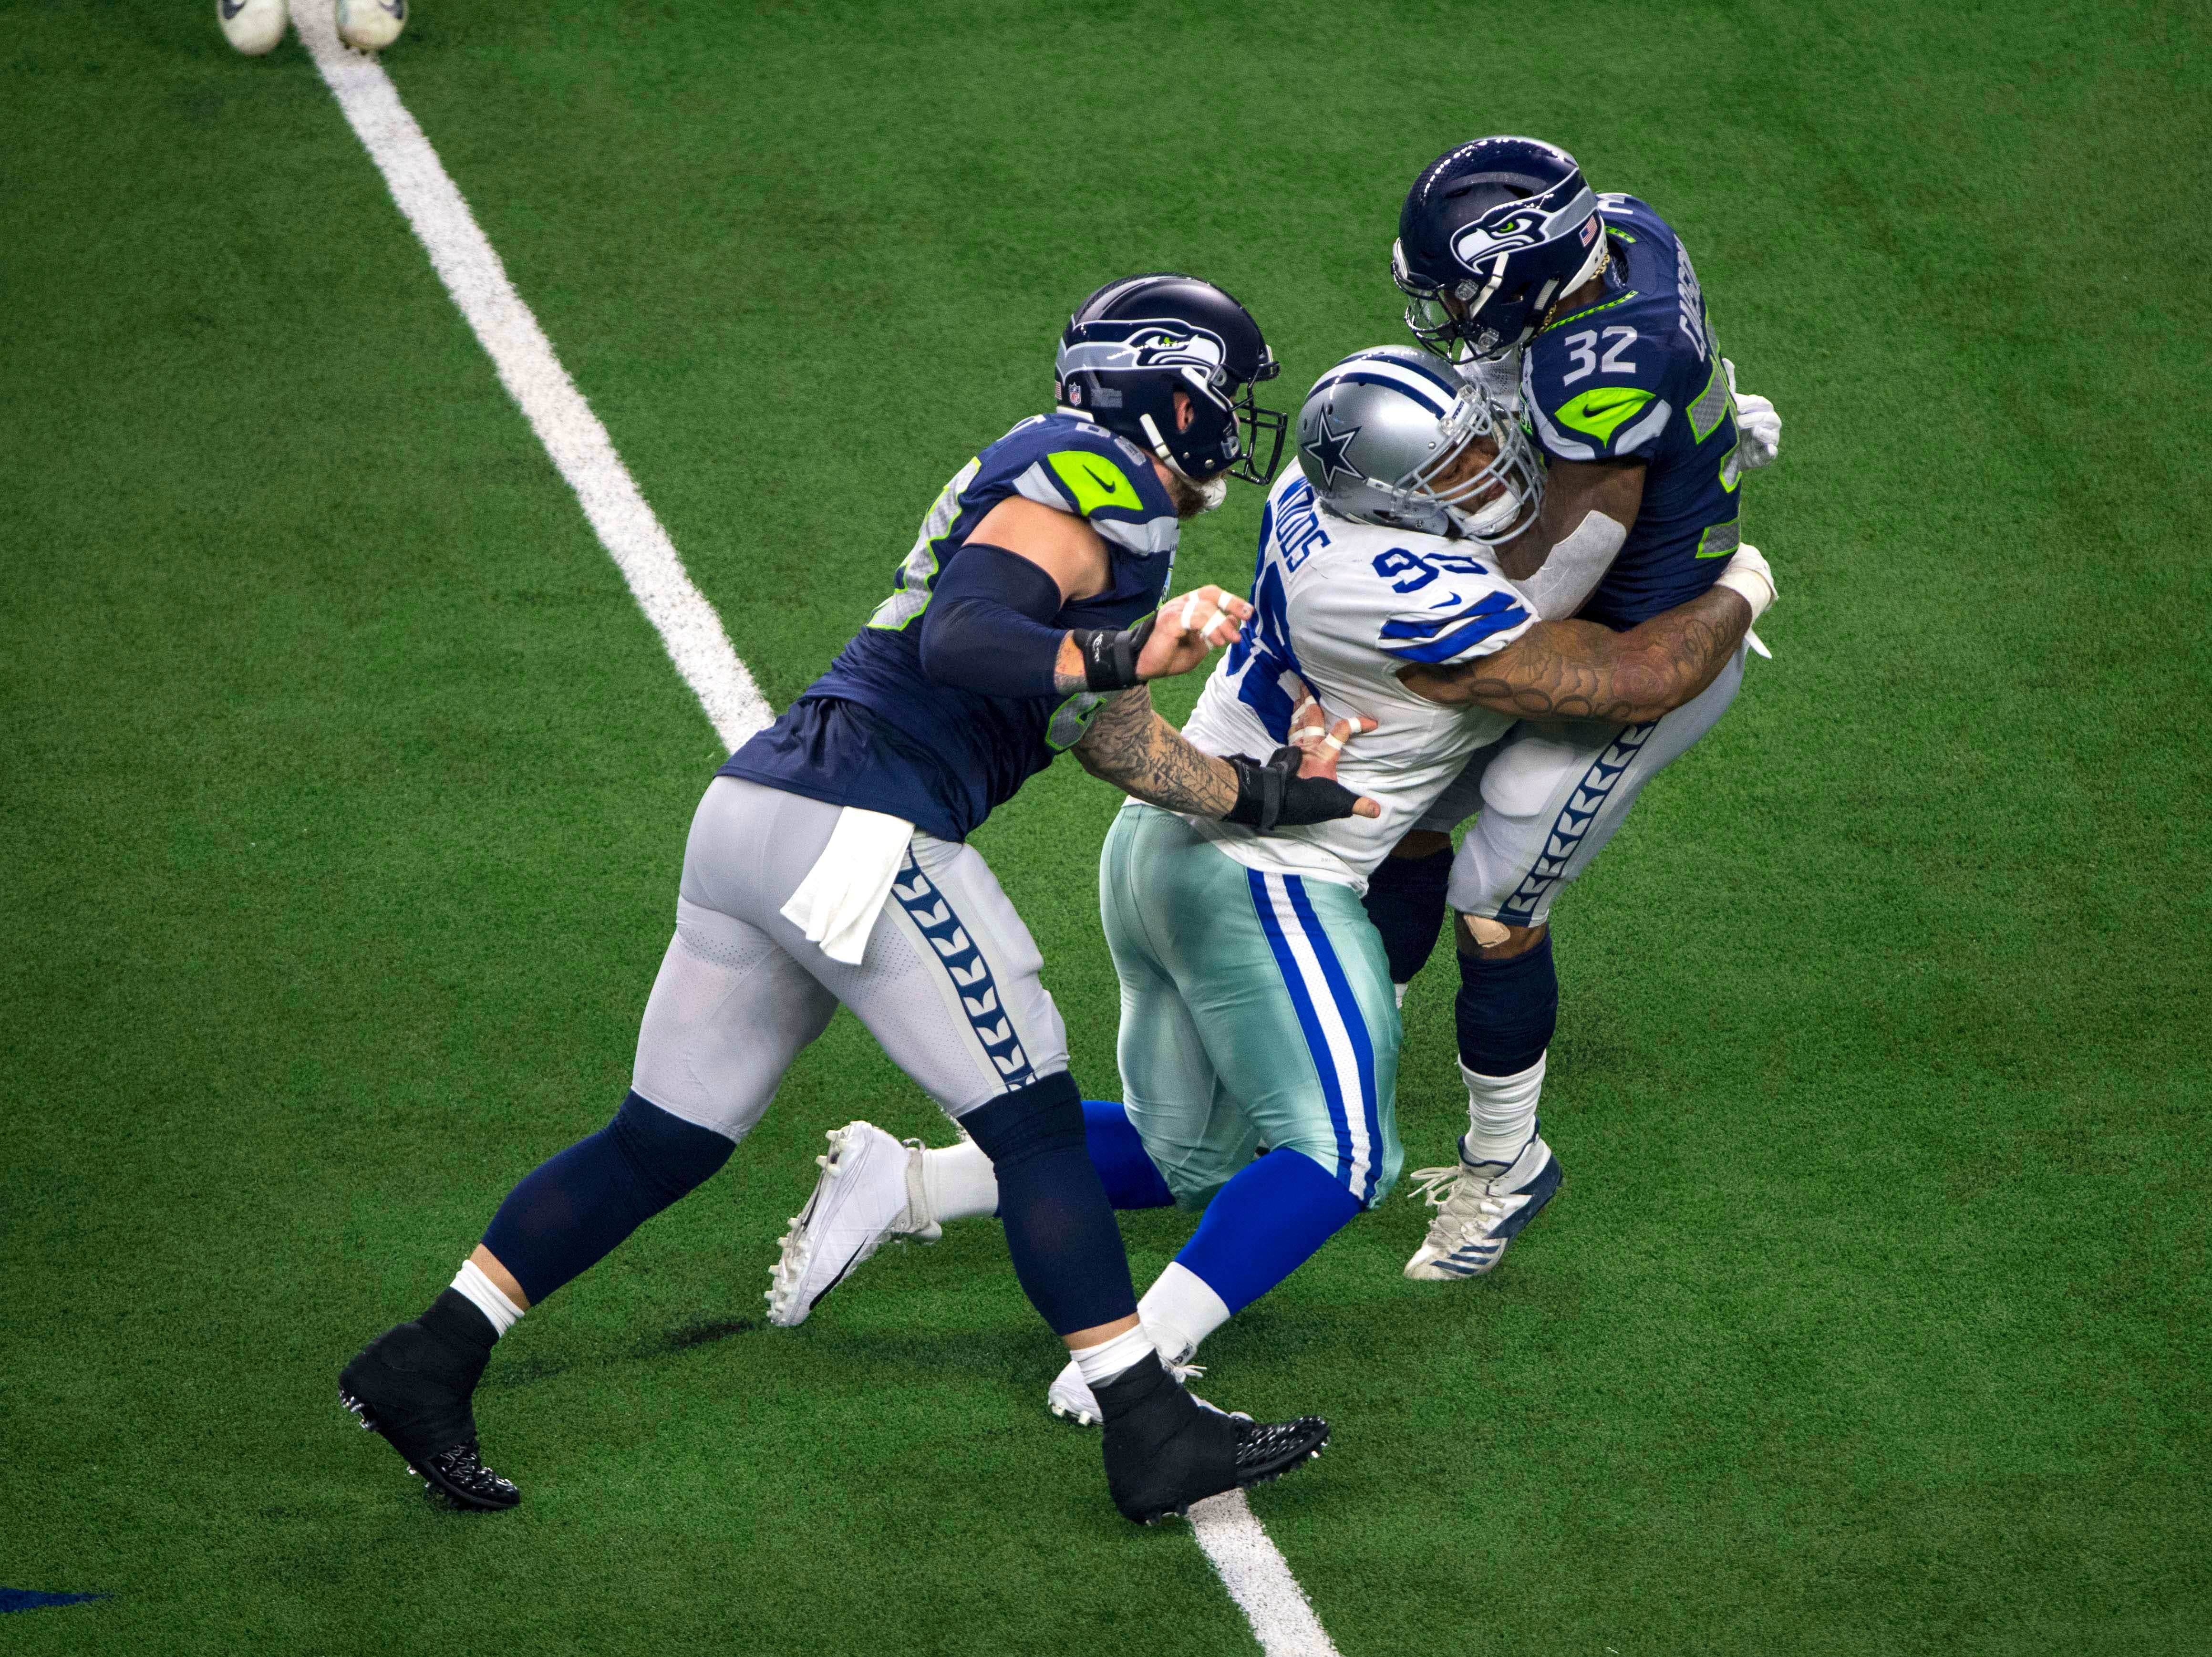 Seattle Seahawks running back Chris Carson (32) is tackled by Dallas Cowboys defensive tackle Antwaun Woods (99) during the first quarter at AT&T Stadium.